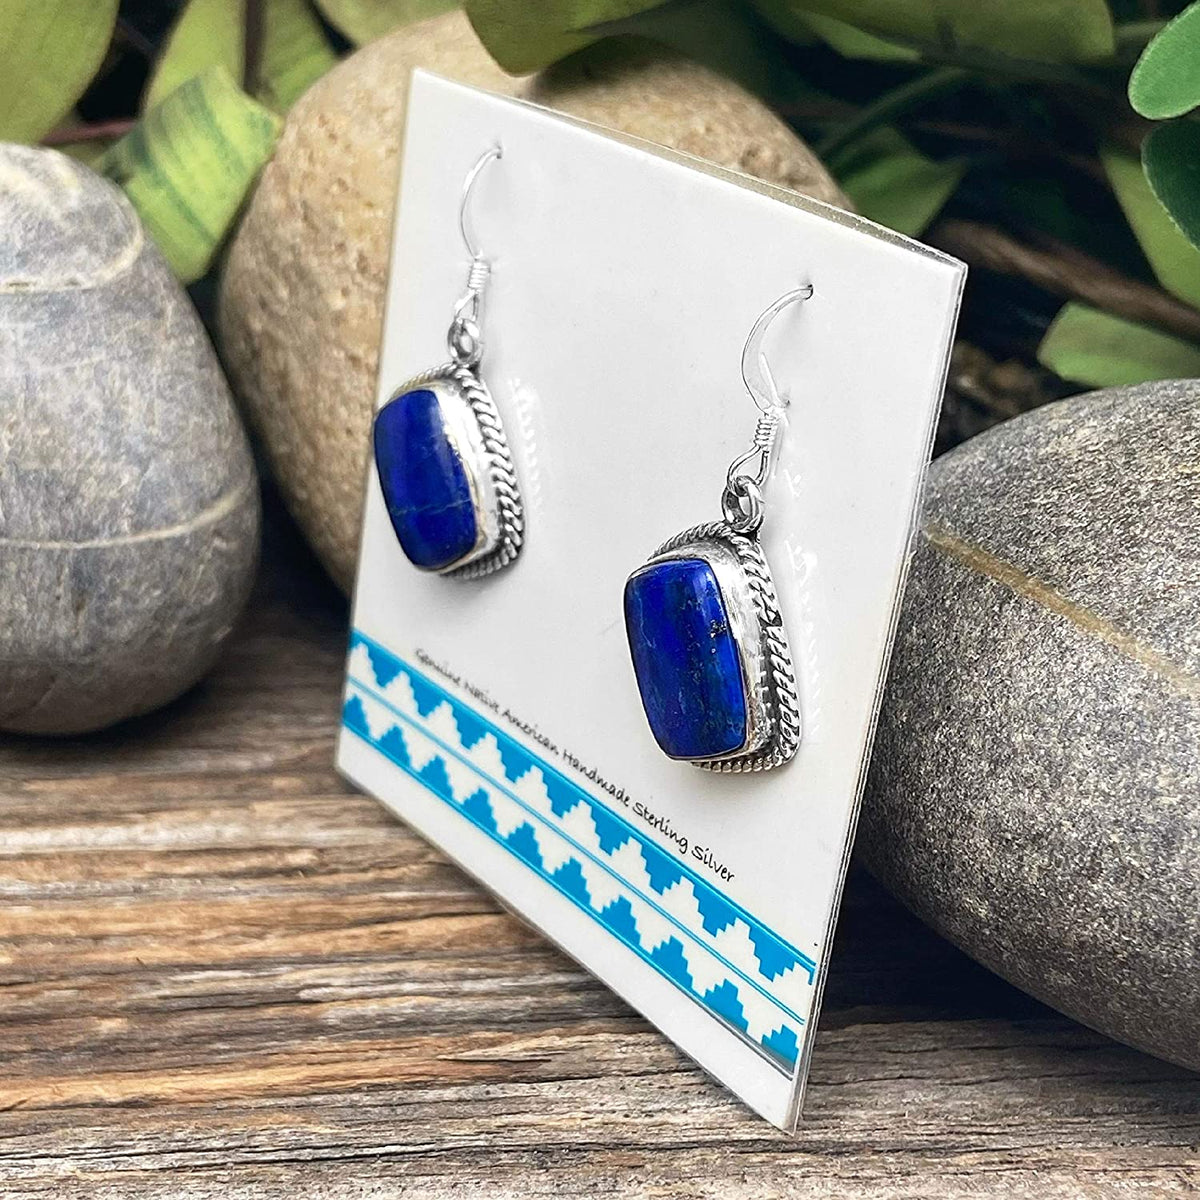 Genuine Lapis Lazuli Earrings, 925 Sterling Silver, Native American USA Handmade, Artisan Signed, Nickle Free, Navy Blue, French Hook